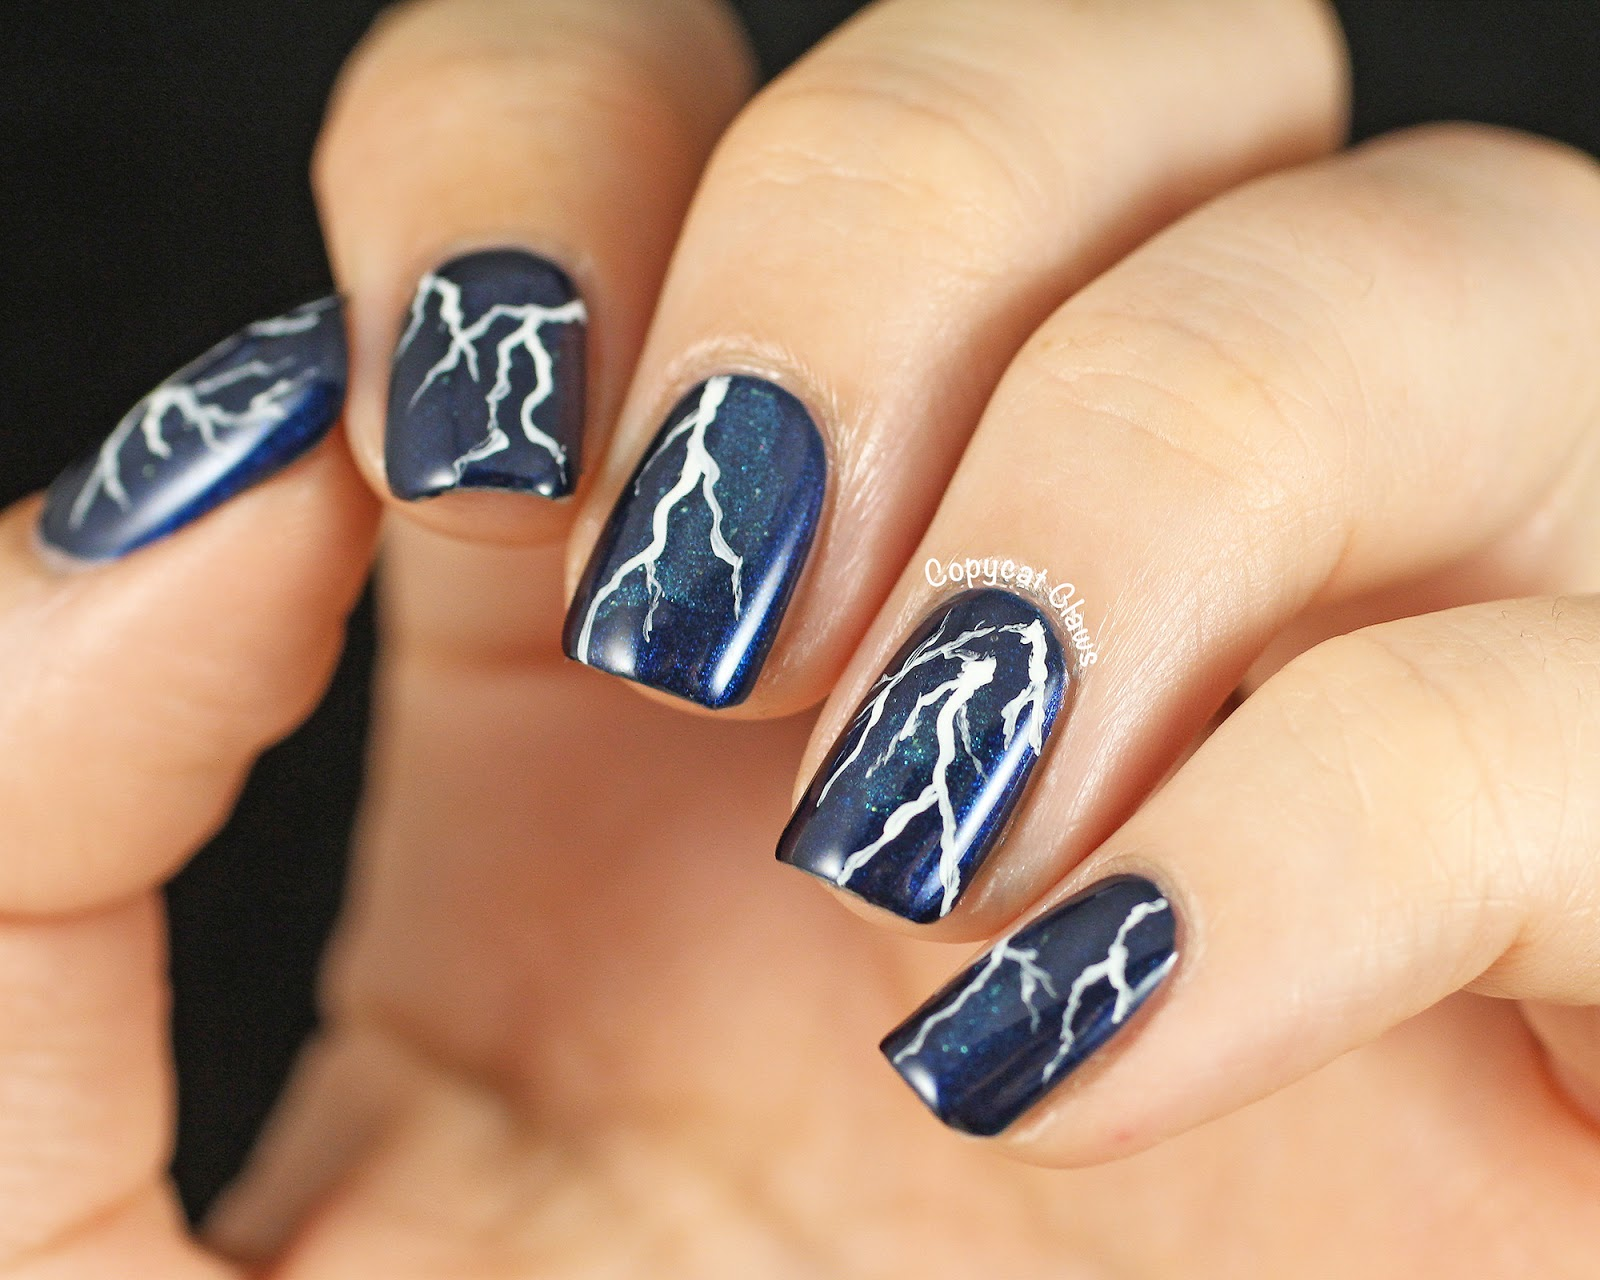 Copycat Claws Lightning Nail Art Picture Polish Electric Blue Then I Painted On Some Simple